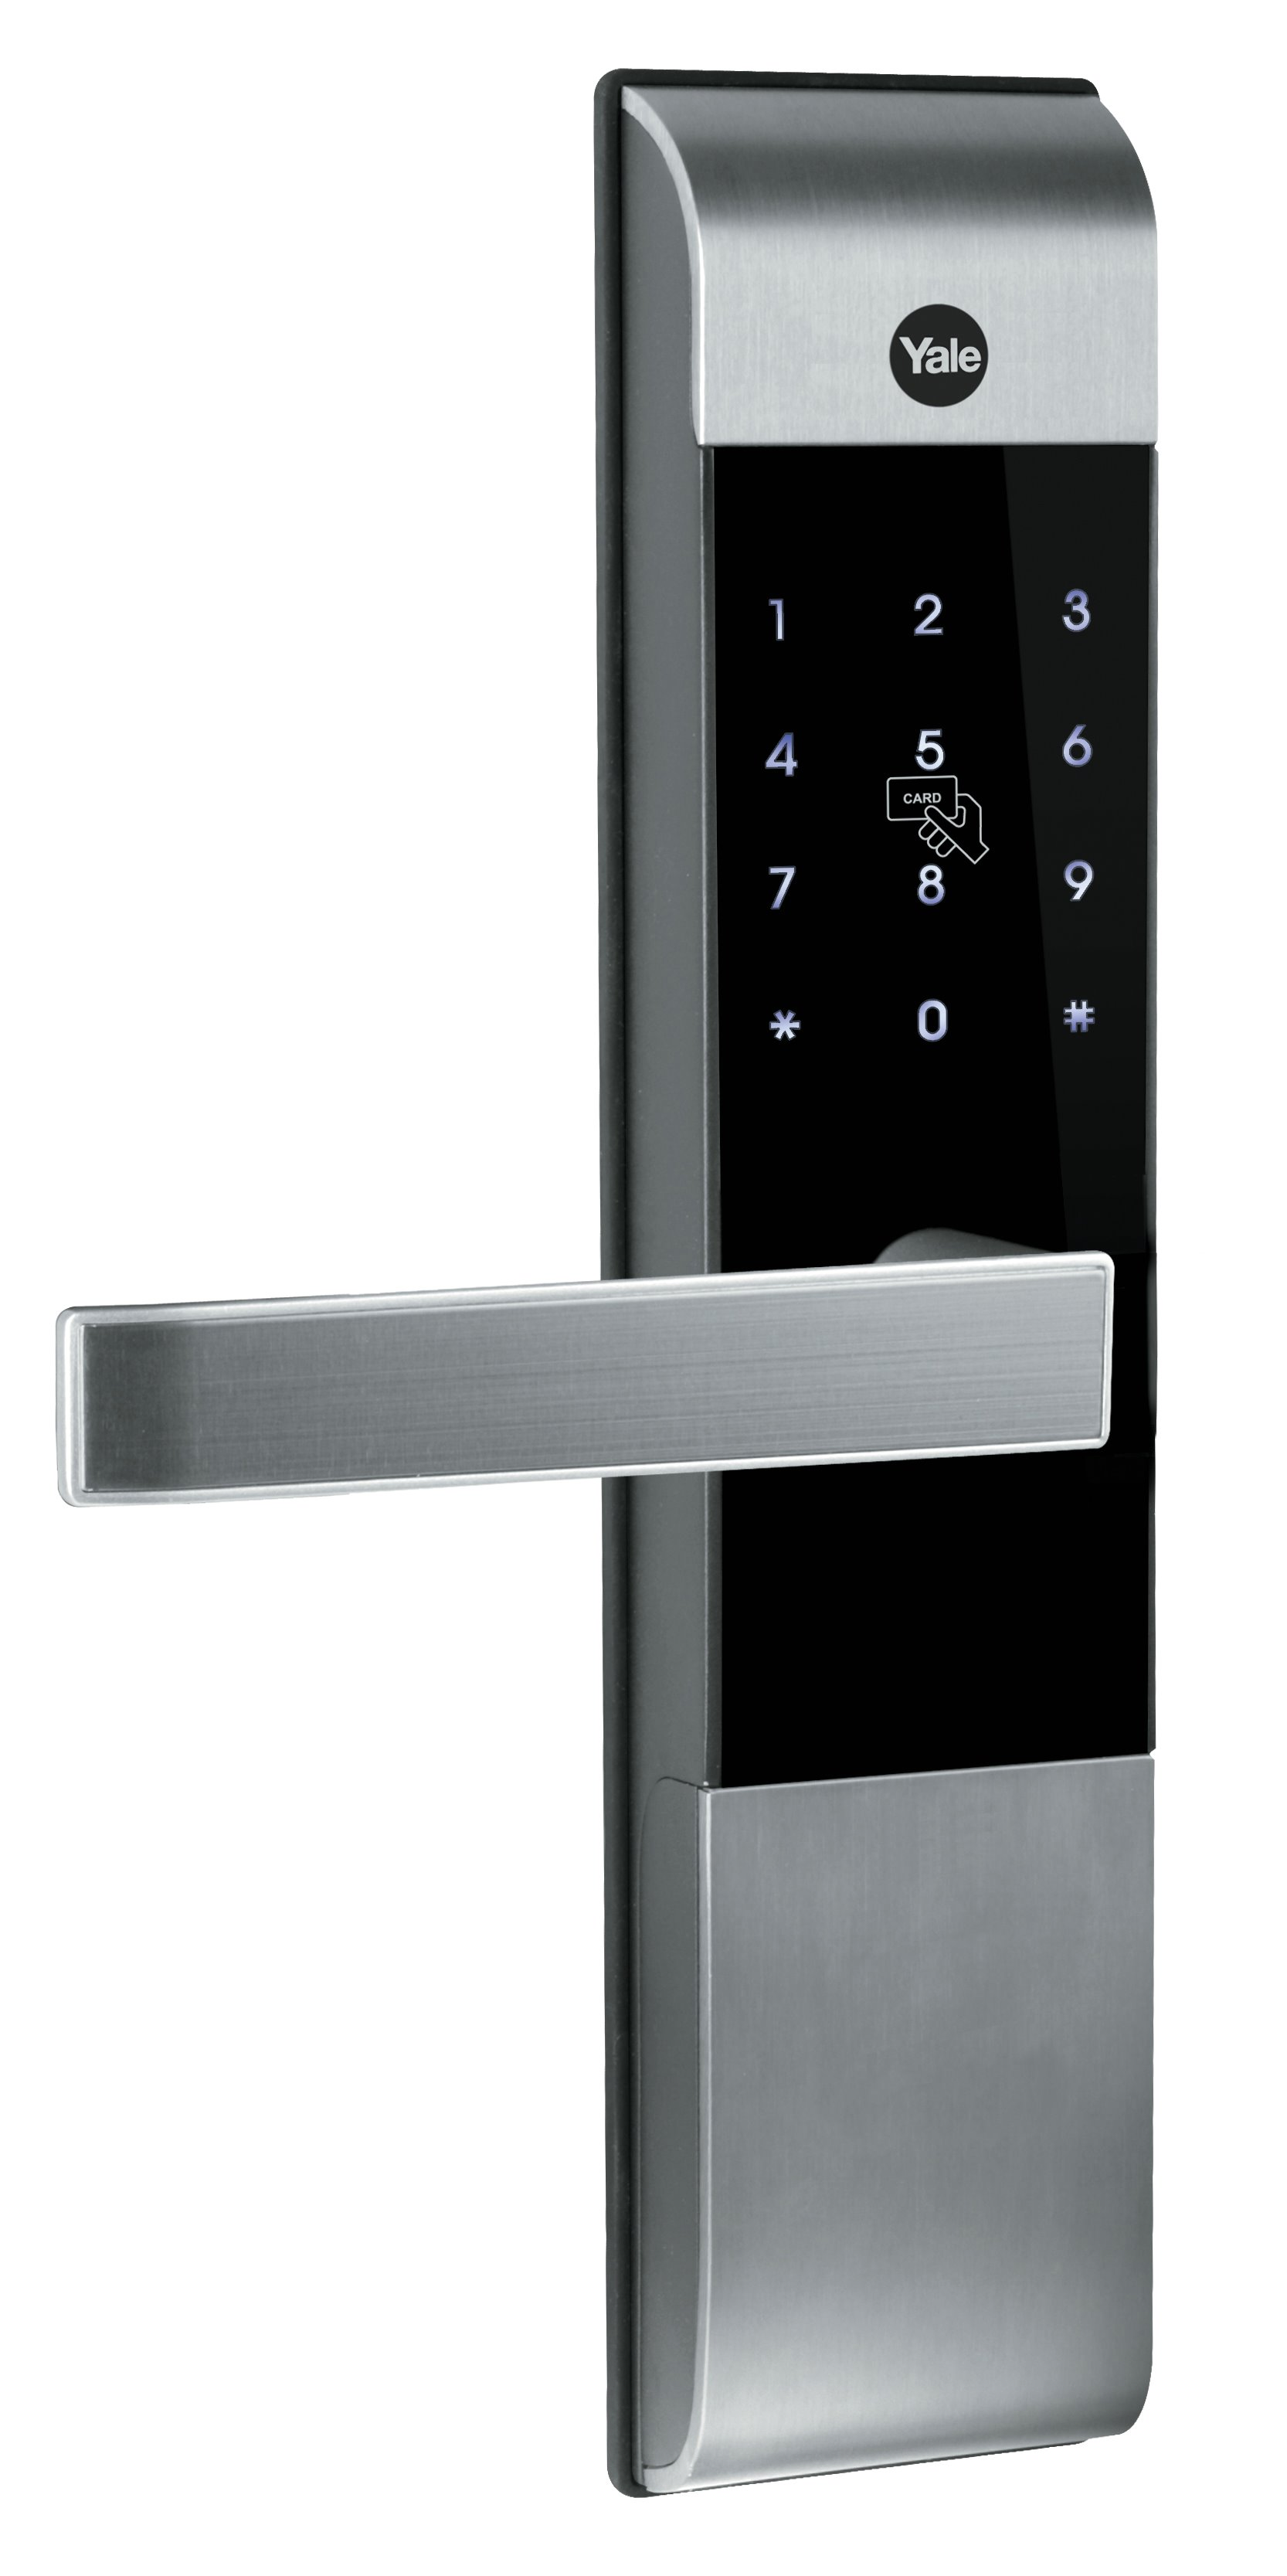 Ydm3109 Rfid Motorized Lock Digital Door Lock